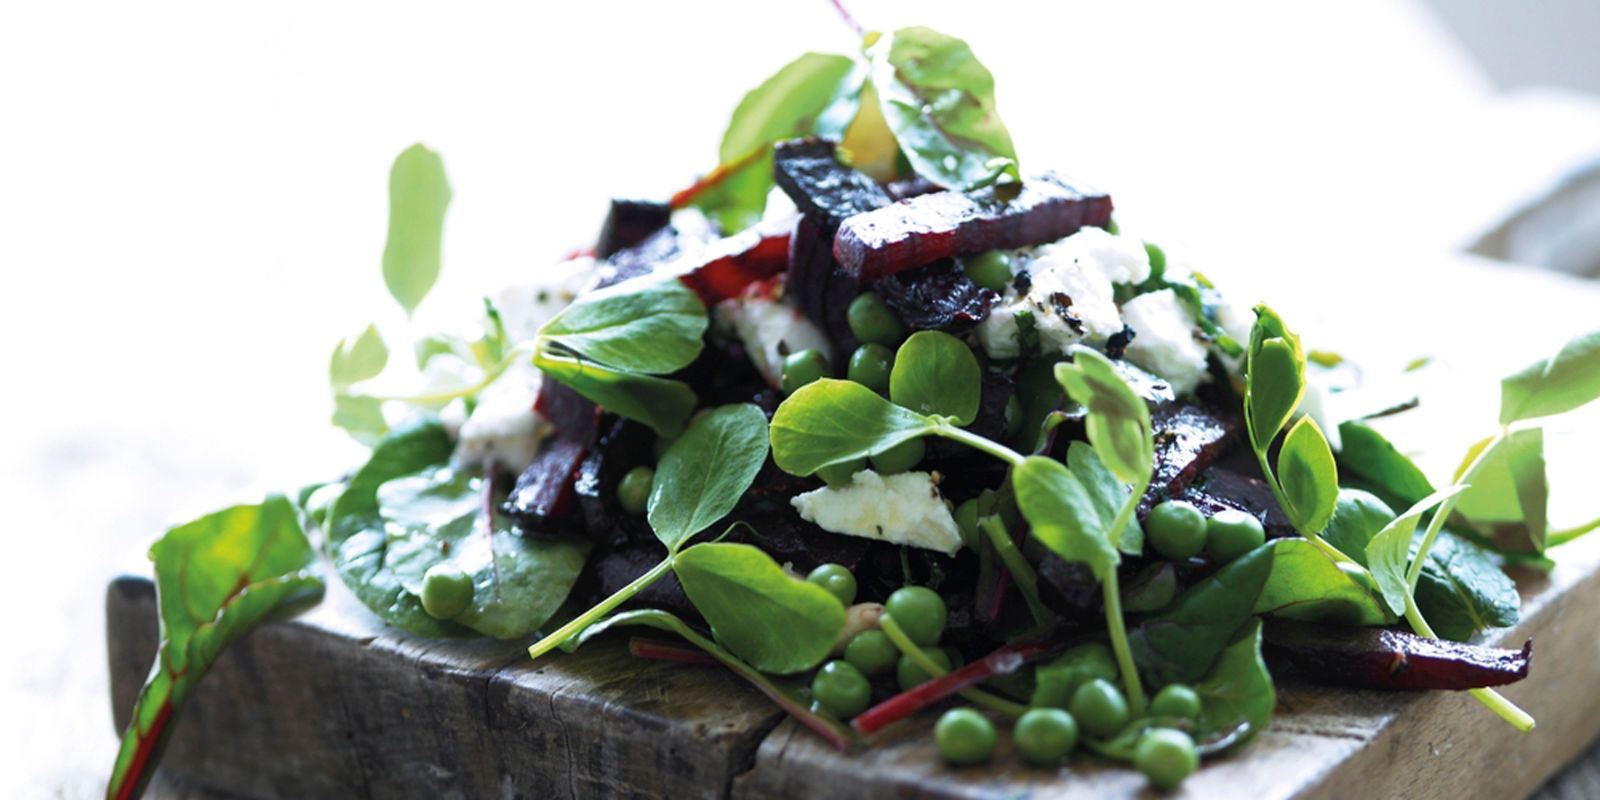 Perfect served as a midweek lunch or healthy side salad